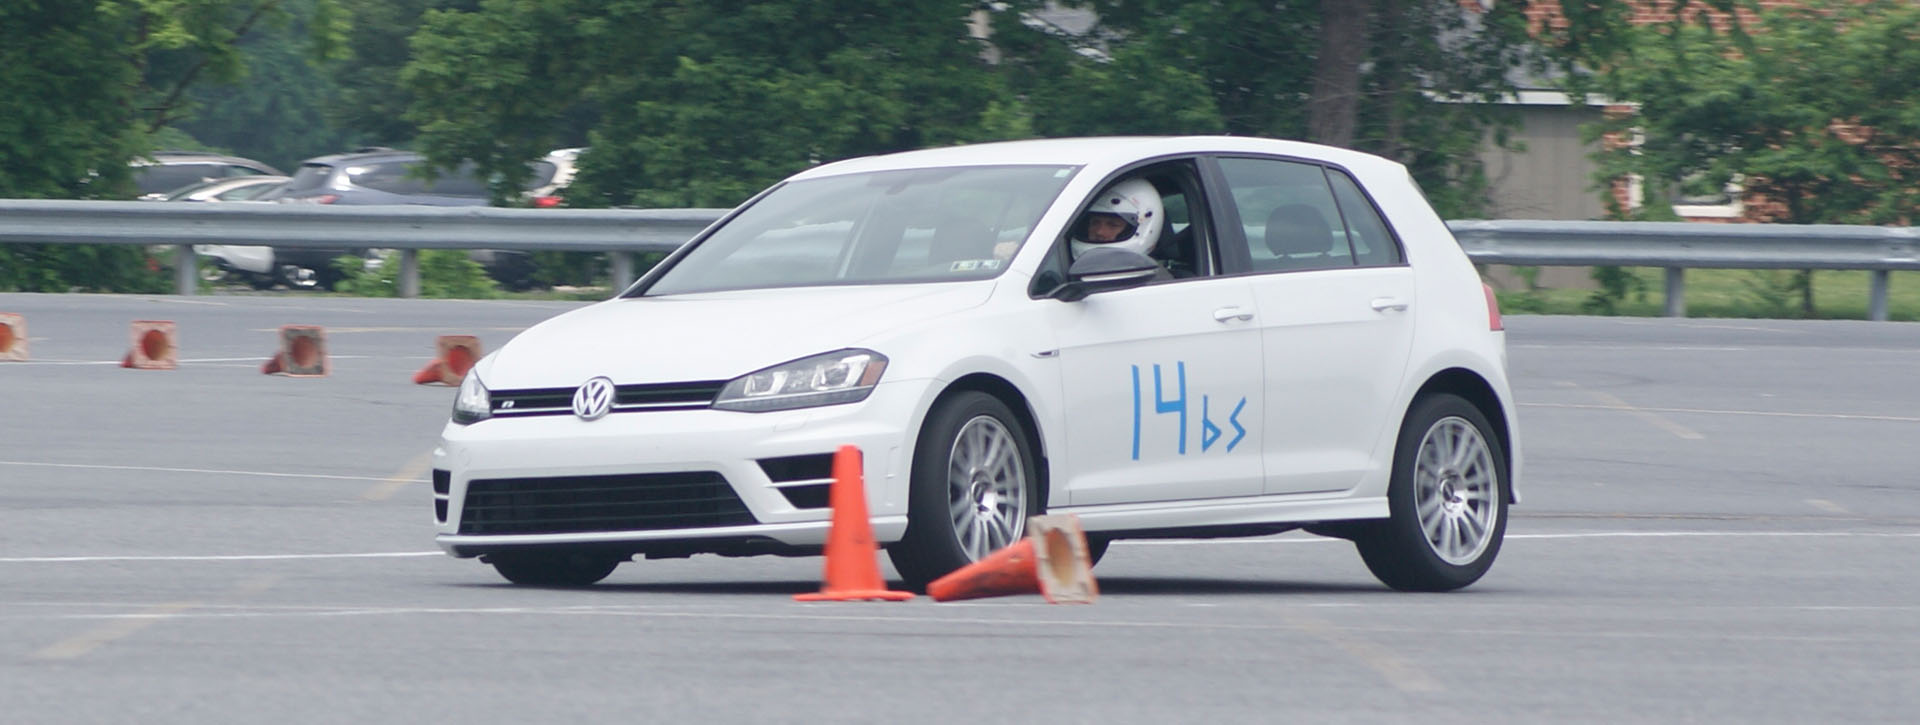 <p>Name: Robert Beers From: Mechanicsburg, PA Runs: Currently: AutoCross Has run: HPDE, Karting, and Drag Racing Drives: 2016 VW Golf R in BS class MemberSince: 2015 I am sure we have all seen or spoken to Robert Beers on more than one occasion. Always willing to assist or just chat [&hellip;]</p>